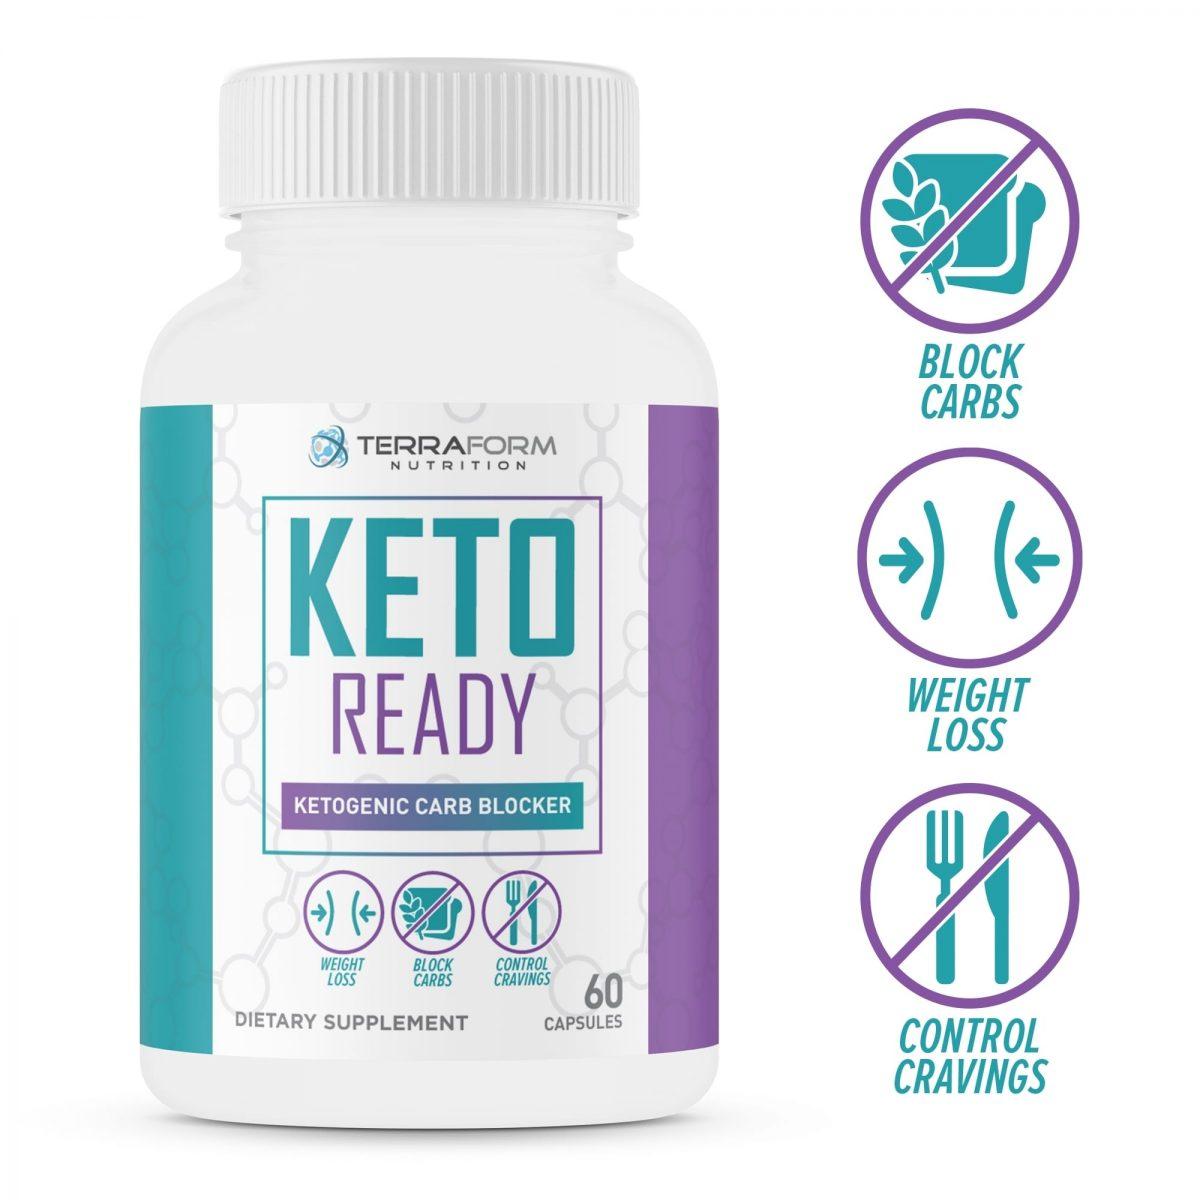 Premium Keto Stack - Keto Excel Weight Loss & Keto Ready Carb Blocker - 30 Day Supply-749